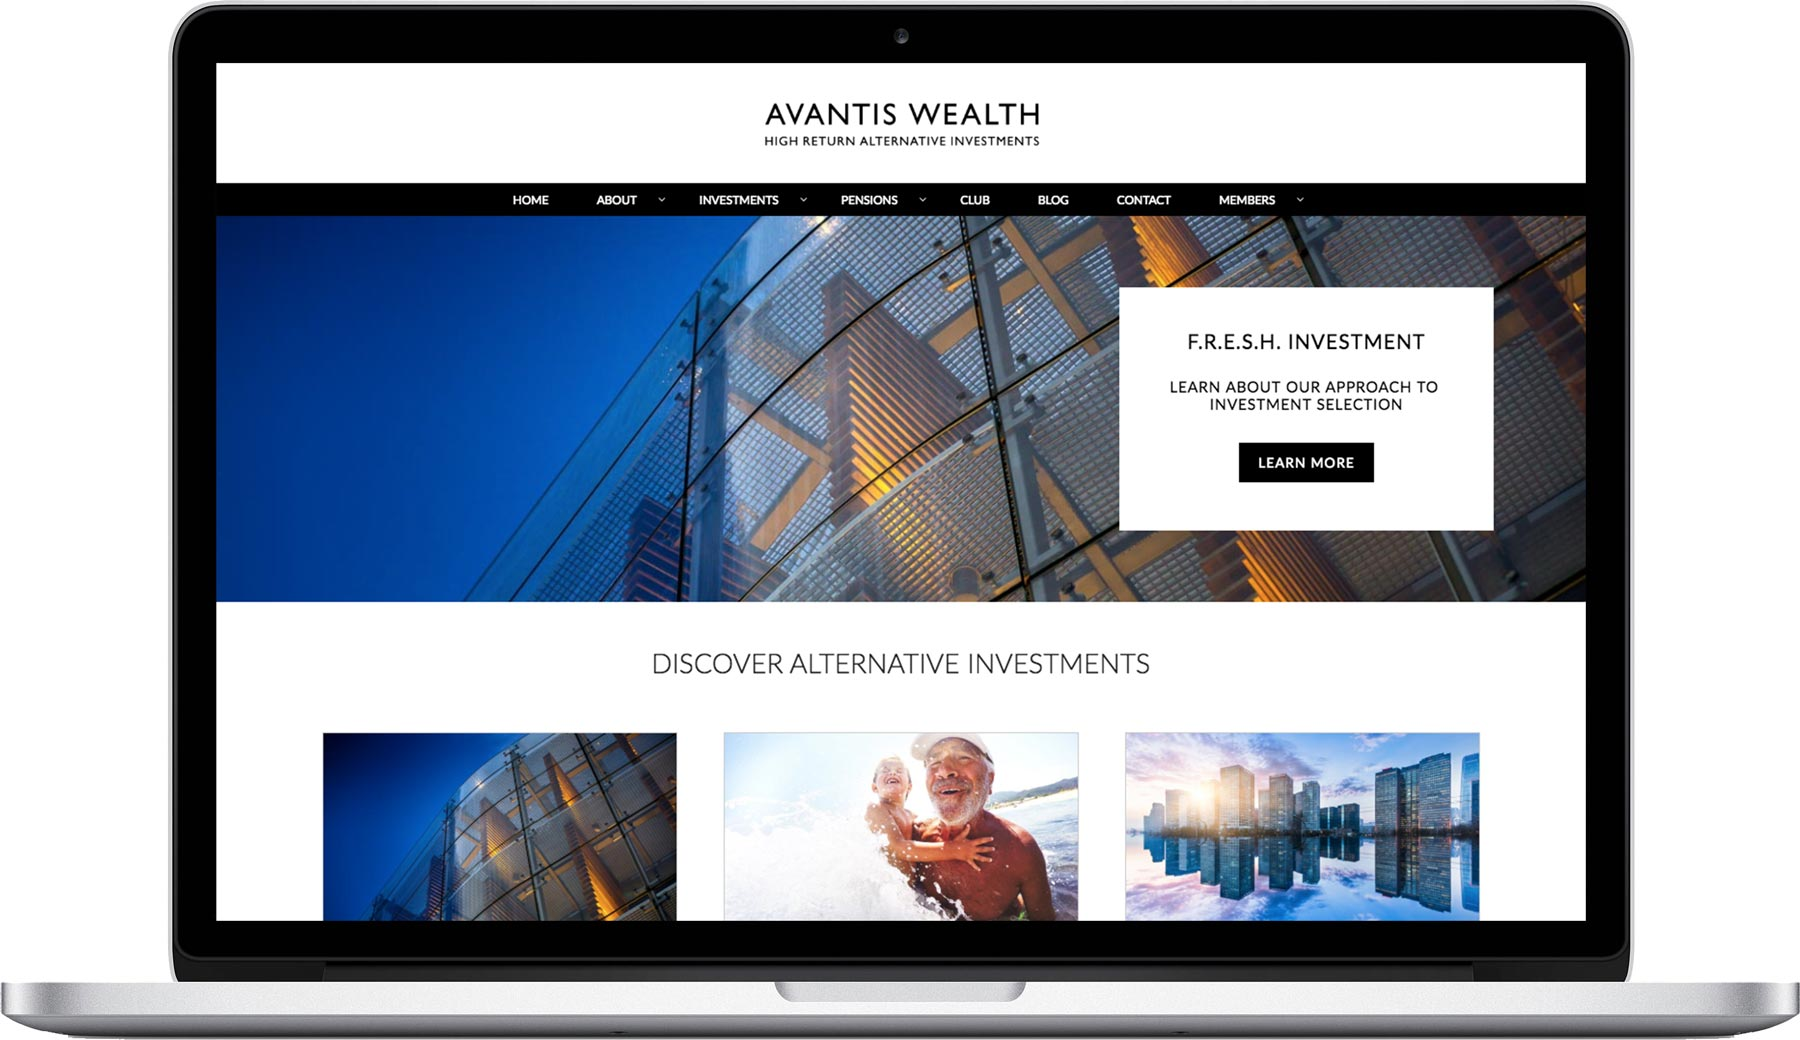 Avantis Wealth website